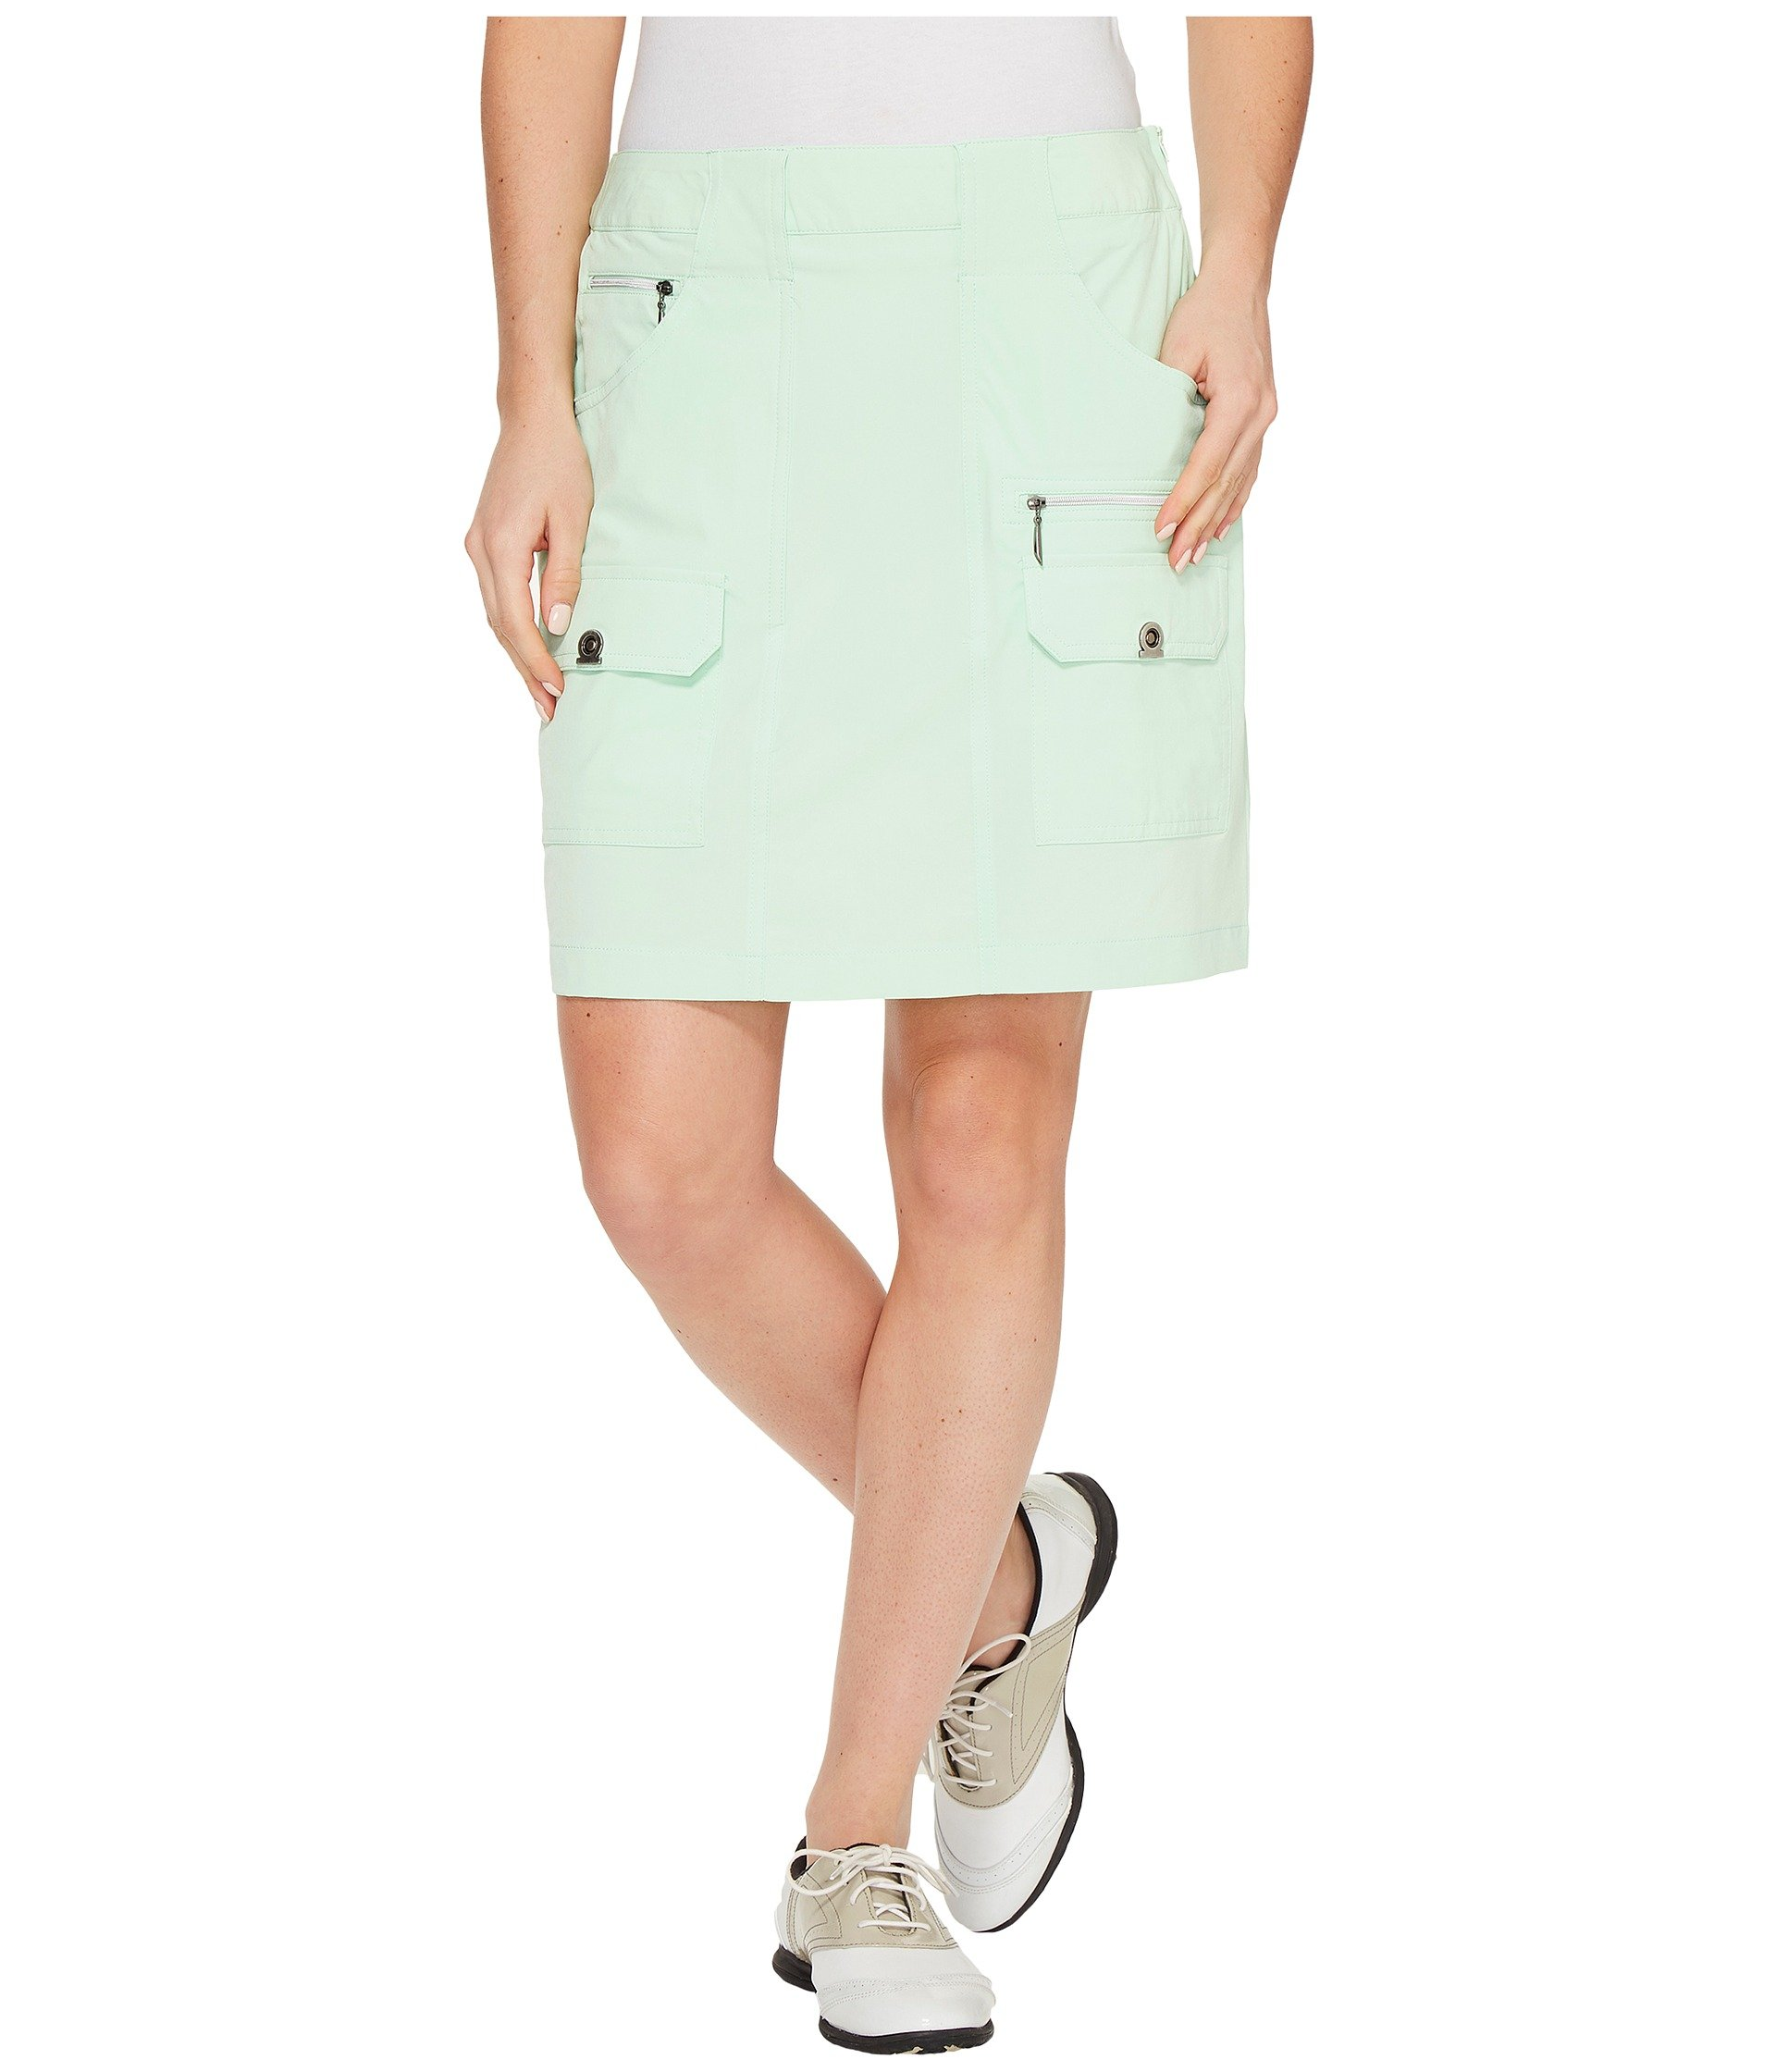 Jamie Sadock Women's Airwear Light Weight 18 in. Skort Mint Julep 12 4 by Jamie Sadock (Image #1)